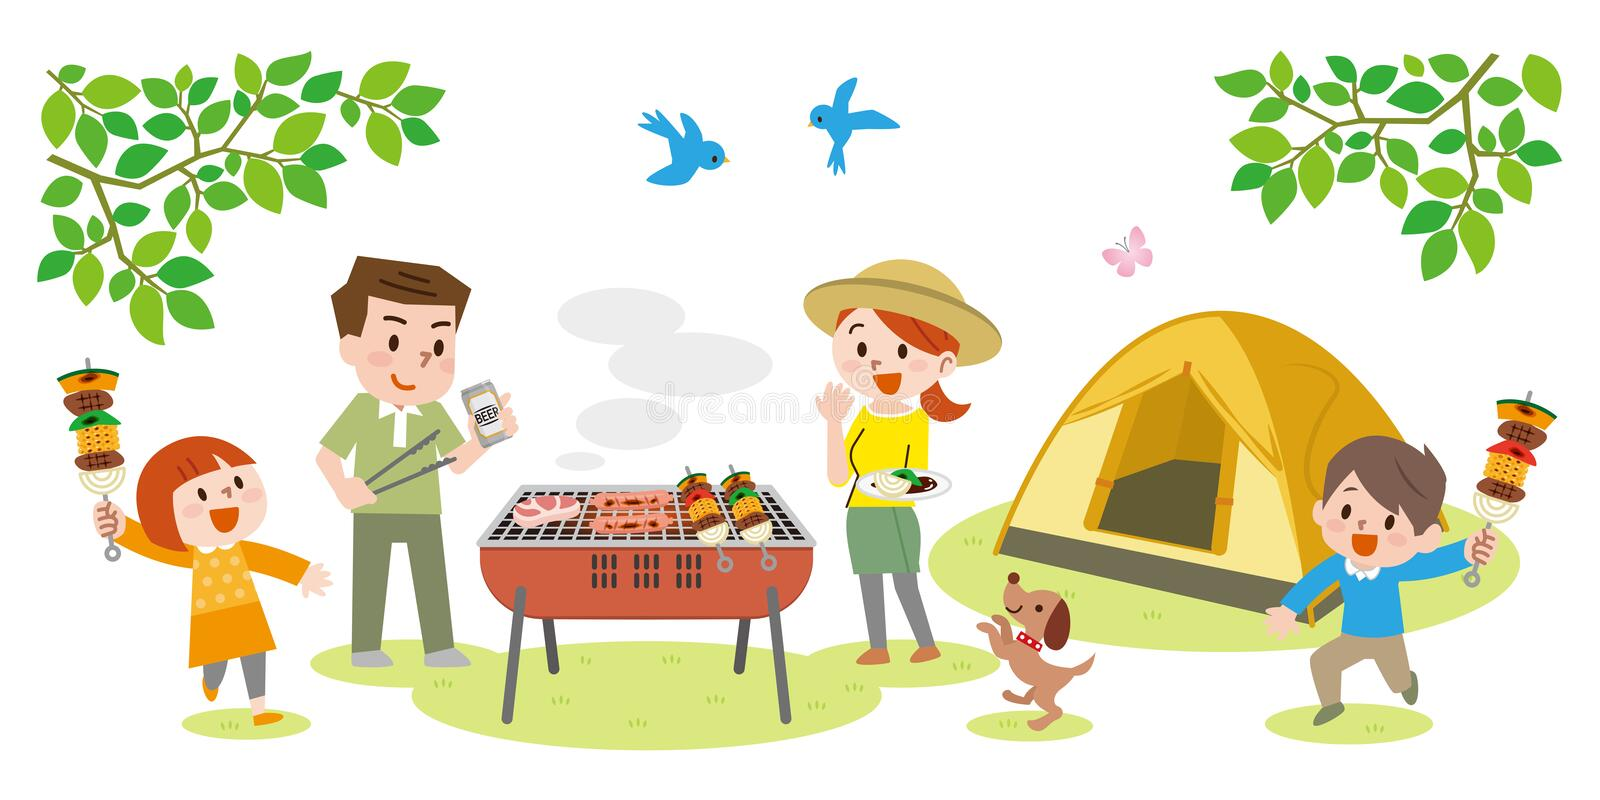 Illustration of family enjoying barbecue outdoors vector illustration